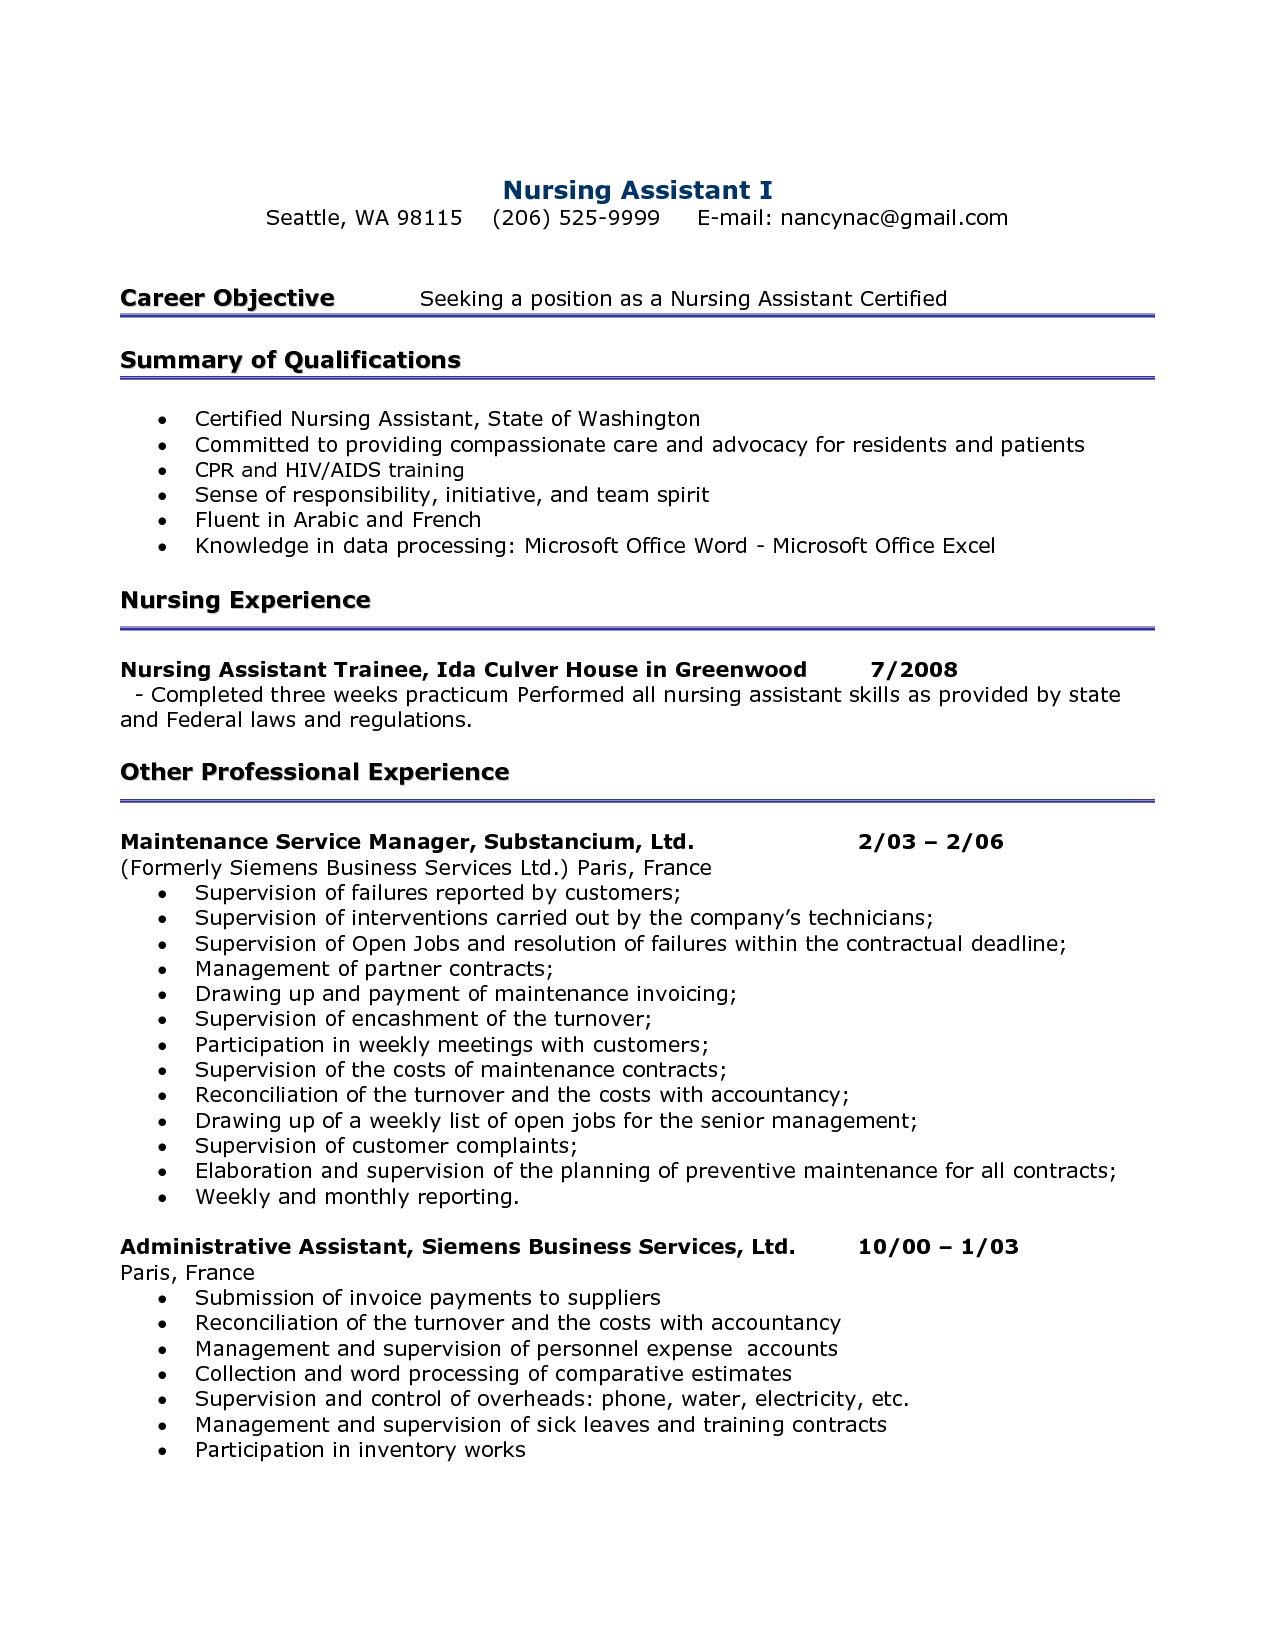 Superior Certified Nursing Assistant Resume   Http://www.resumecareer.info/certified  Nursing Assistant Resume 7/